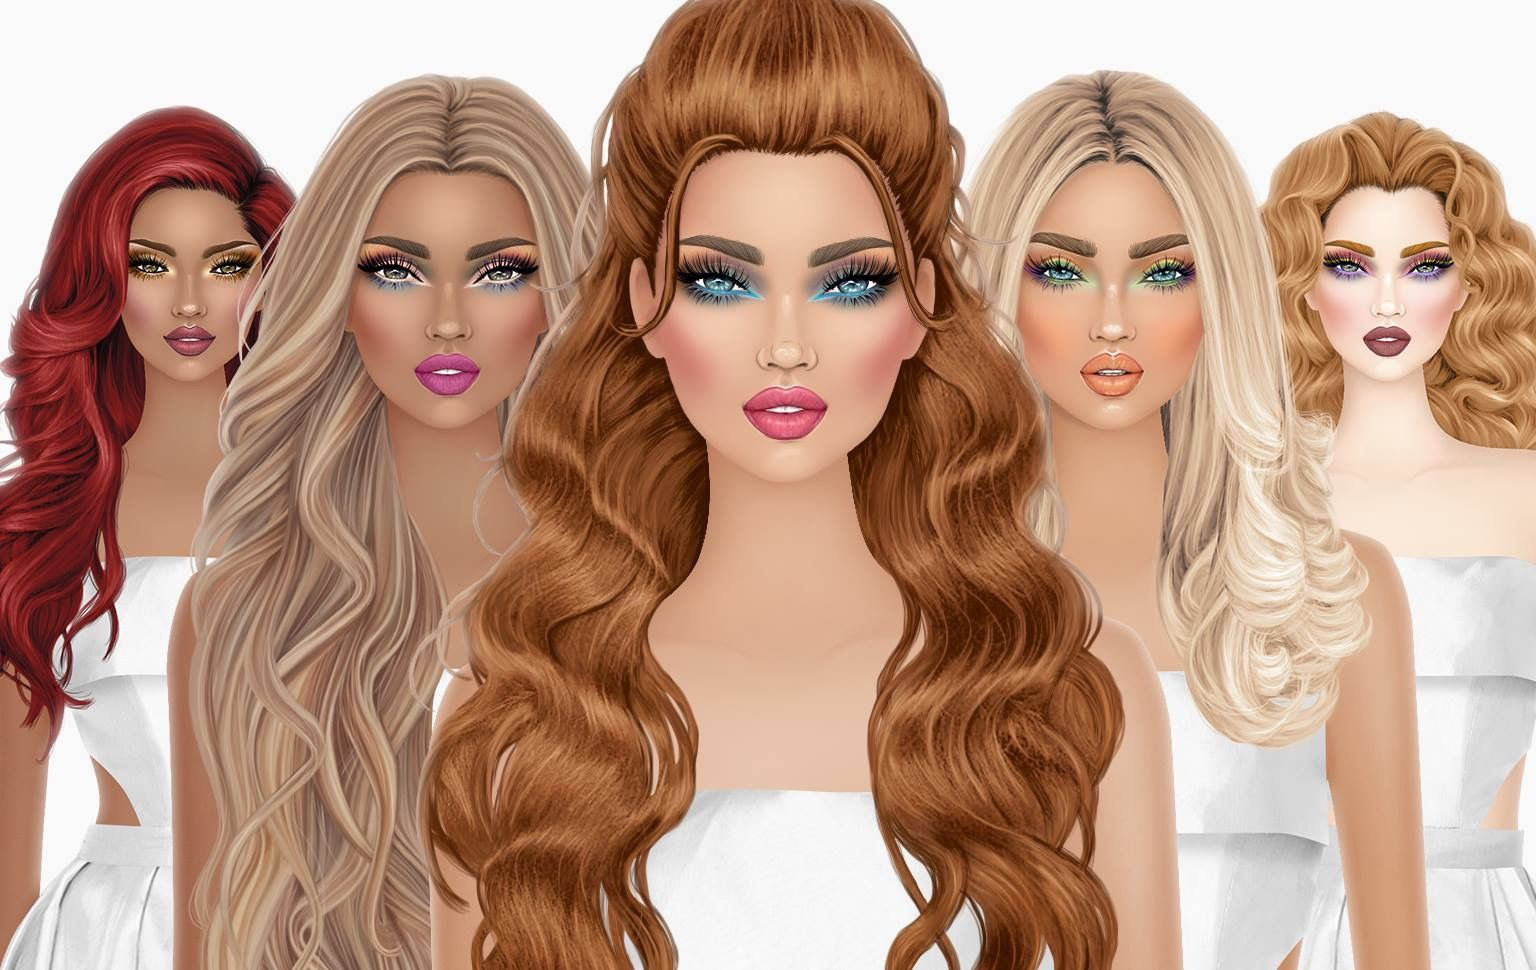 Pin By Music Arabica On Cover Model How To Draw Hair Girly Art Covet Fashion Games